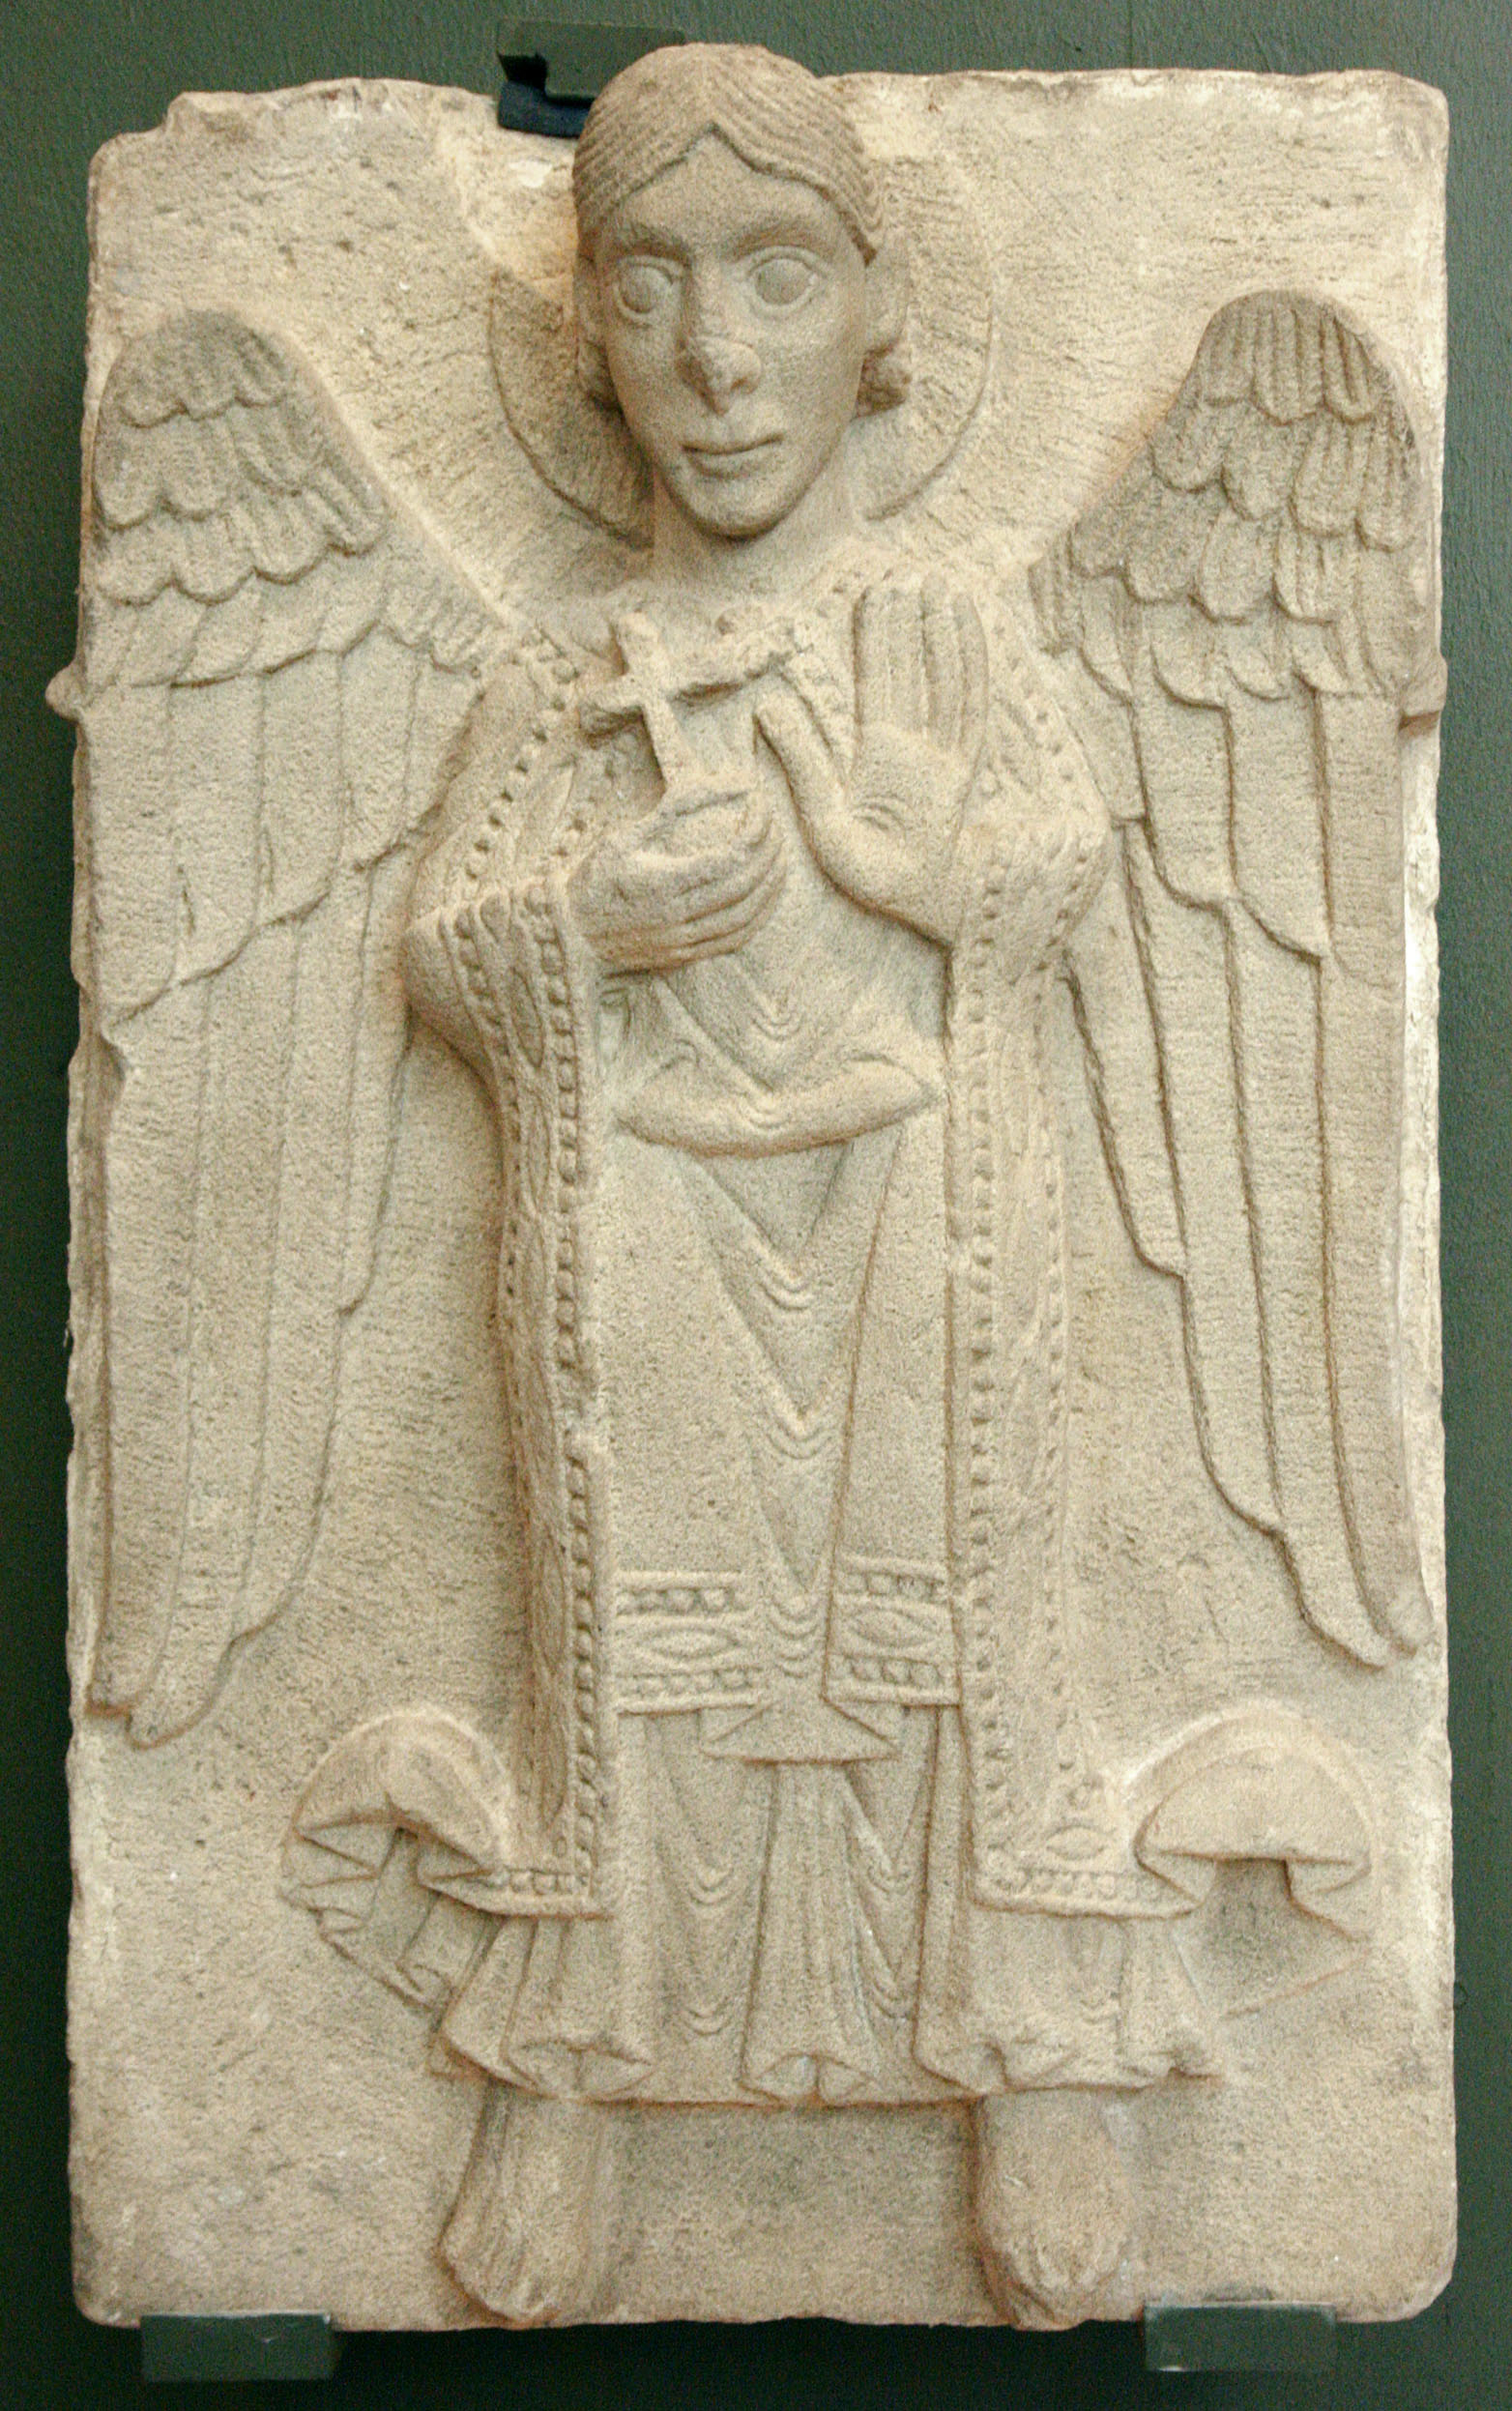 http://upload.wikimedia.org/wikipedia/commons/3/3b/Pecs_-_Romanic_Angel_-_Museum_of_Cathedral_-_Hungary.jpg